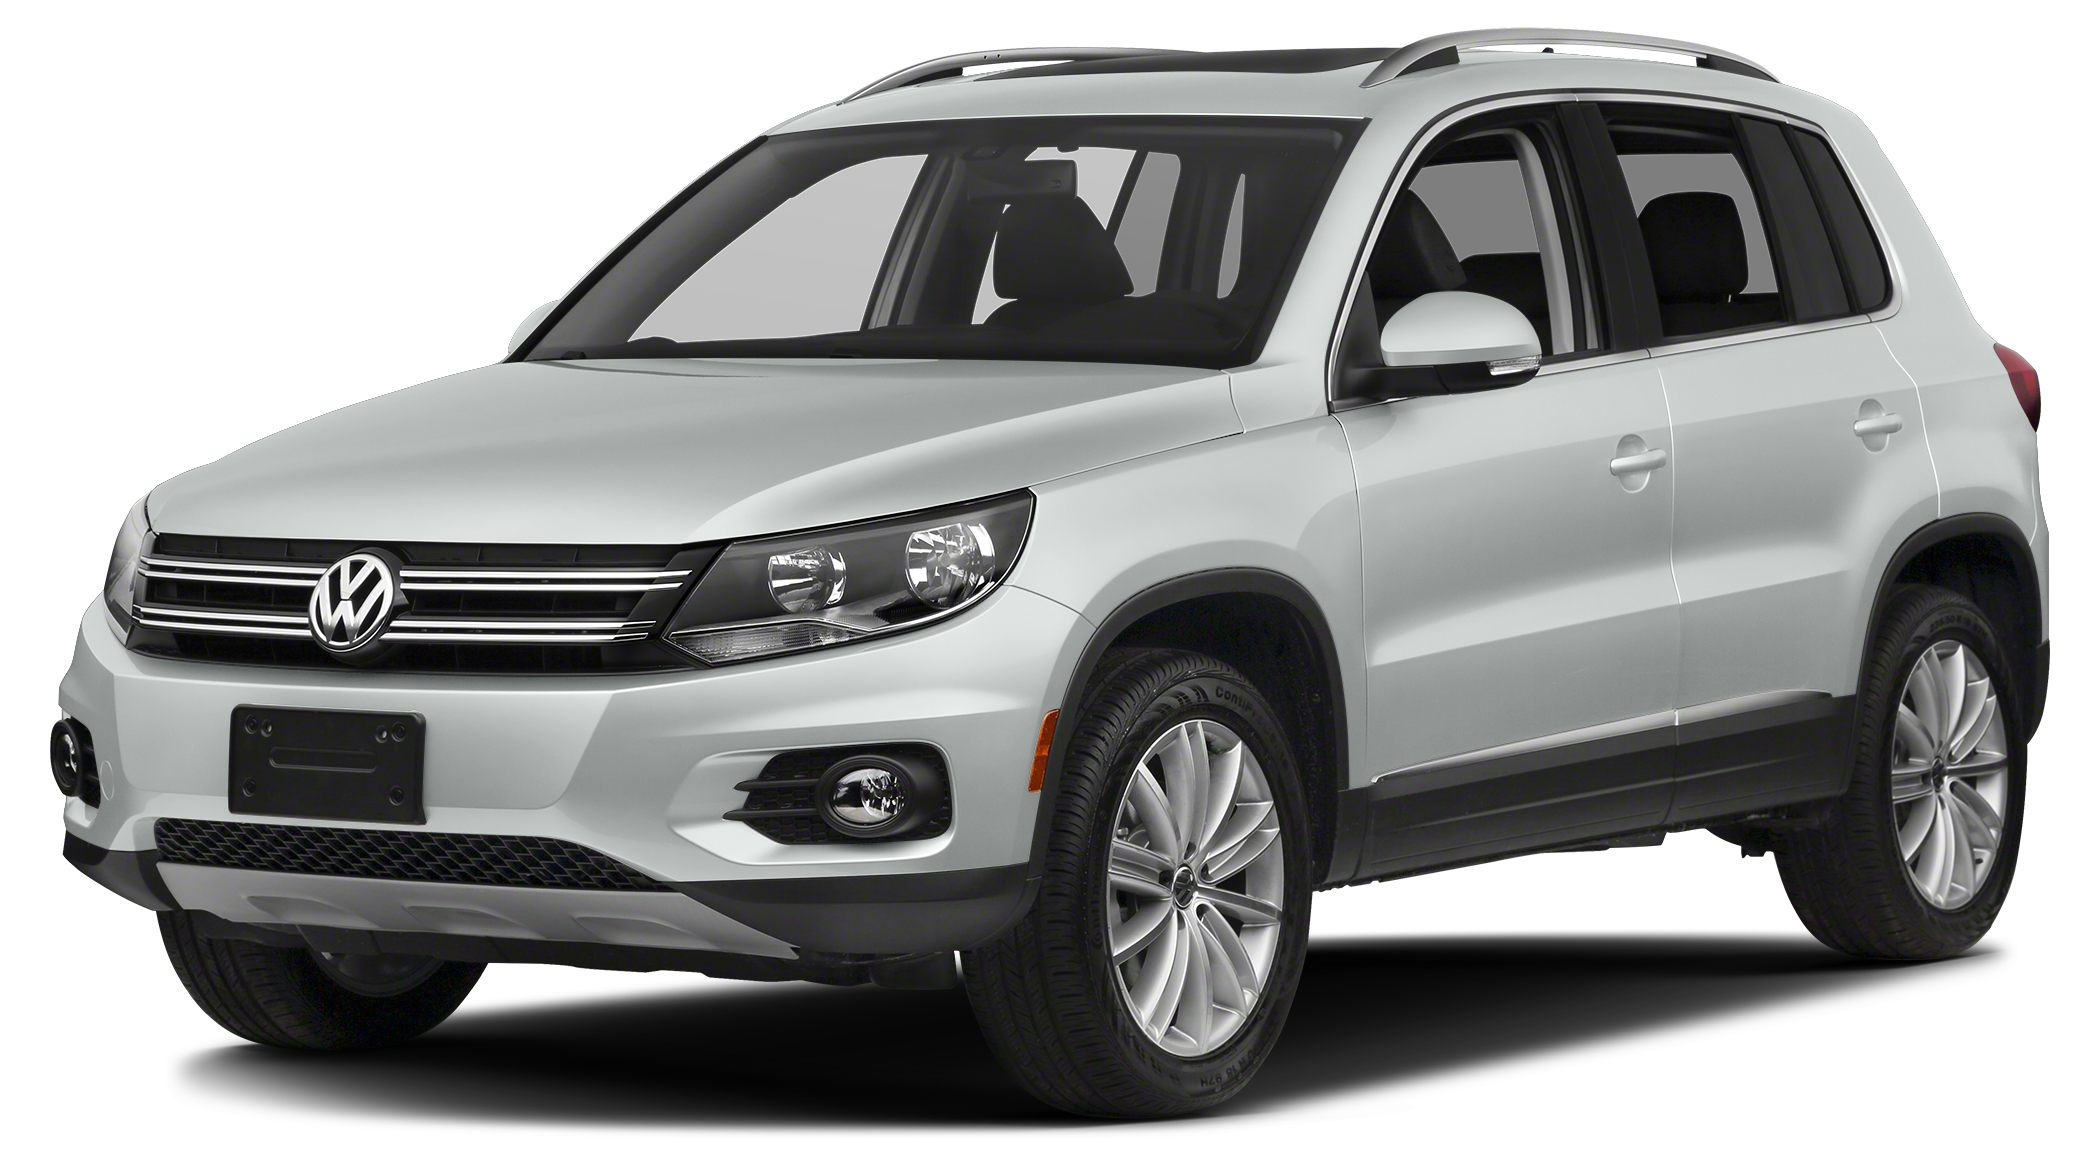 2015 Volkswagen Tiguan S The Tiguan is everything you want in a compact SUV and more It has smoot